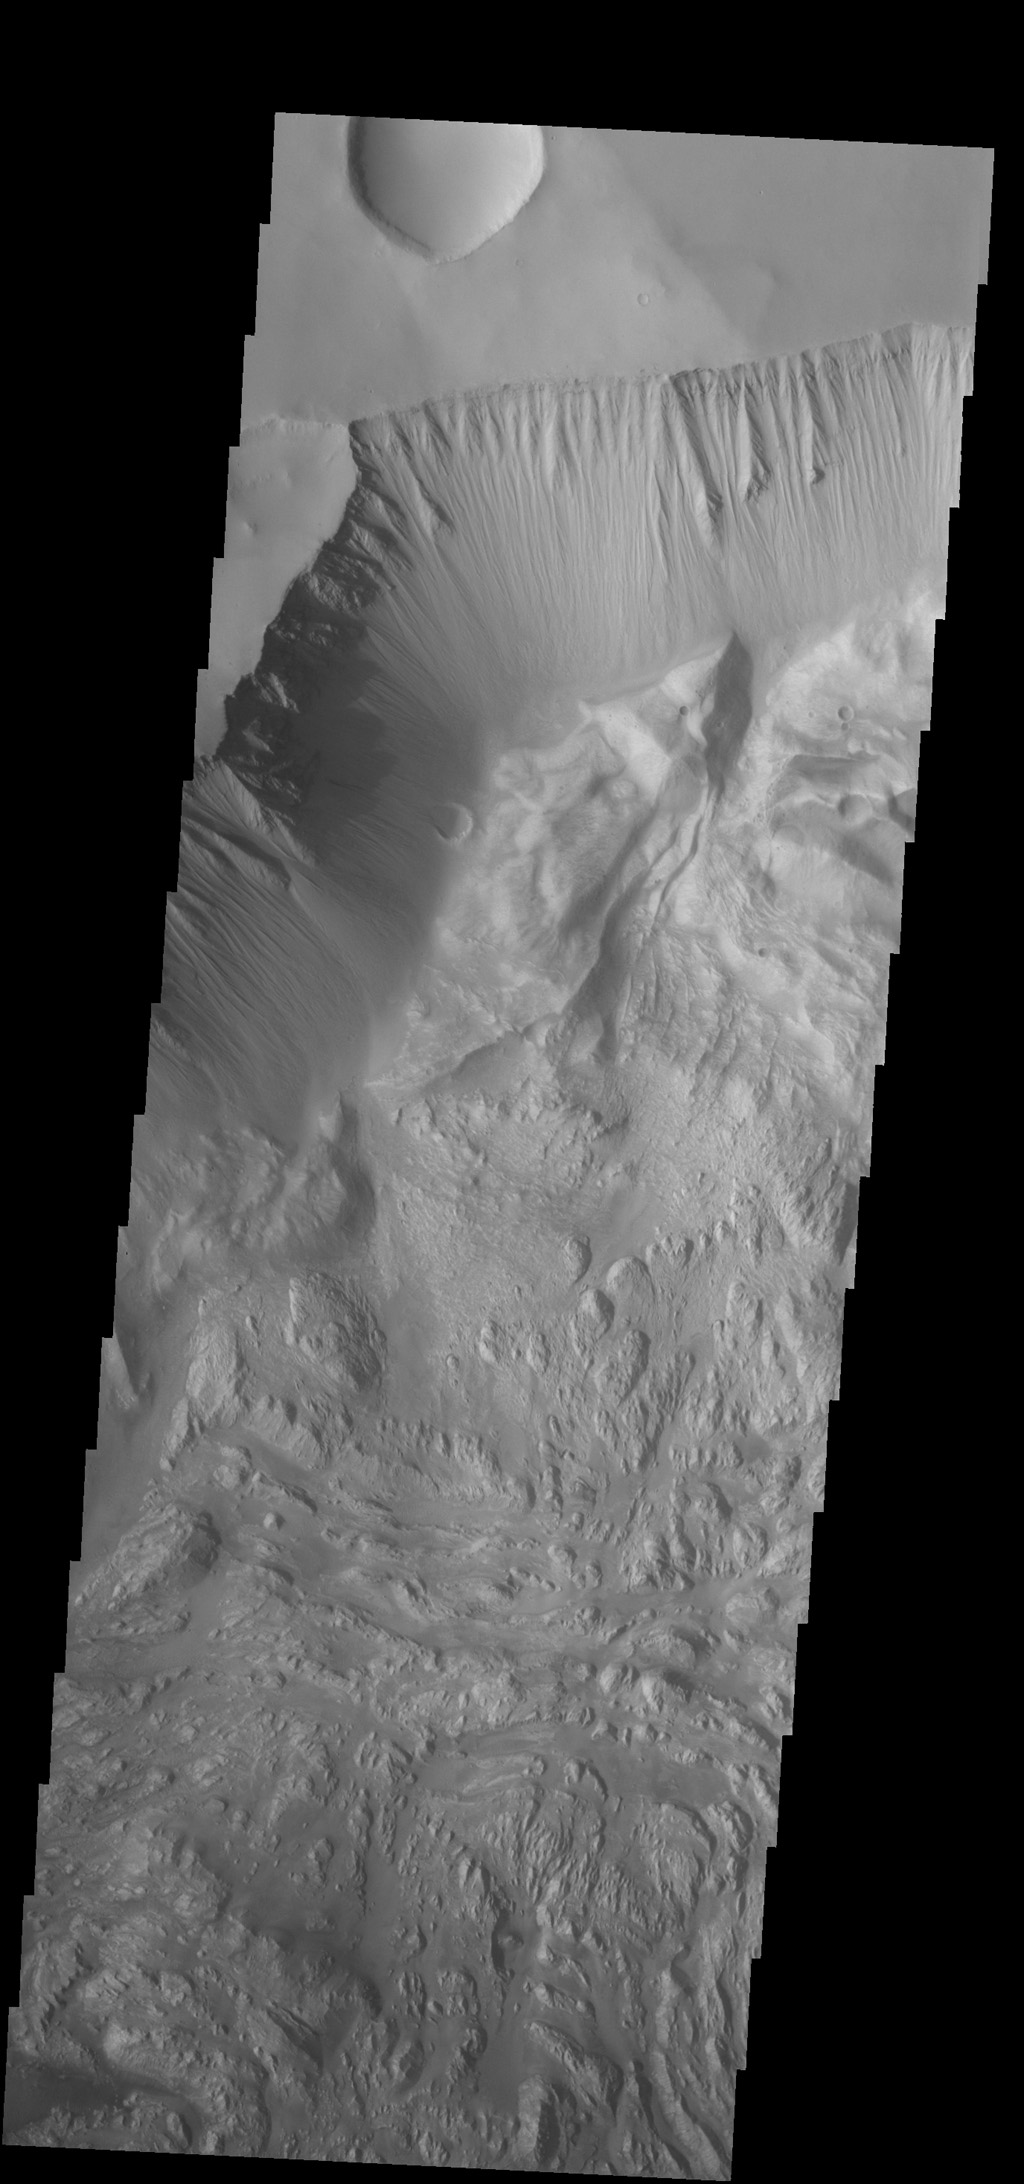 This image from NASA's 2001 Mars Odyssey spacecraft shows part of the wall of Hebes Chasma as well as the complex floor materials.